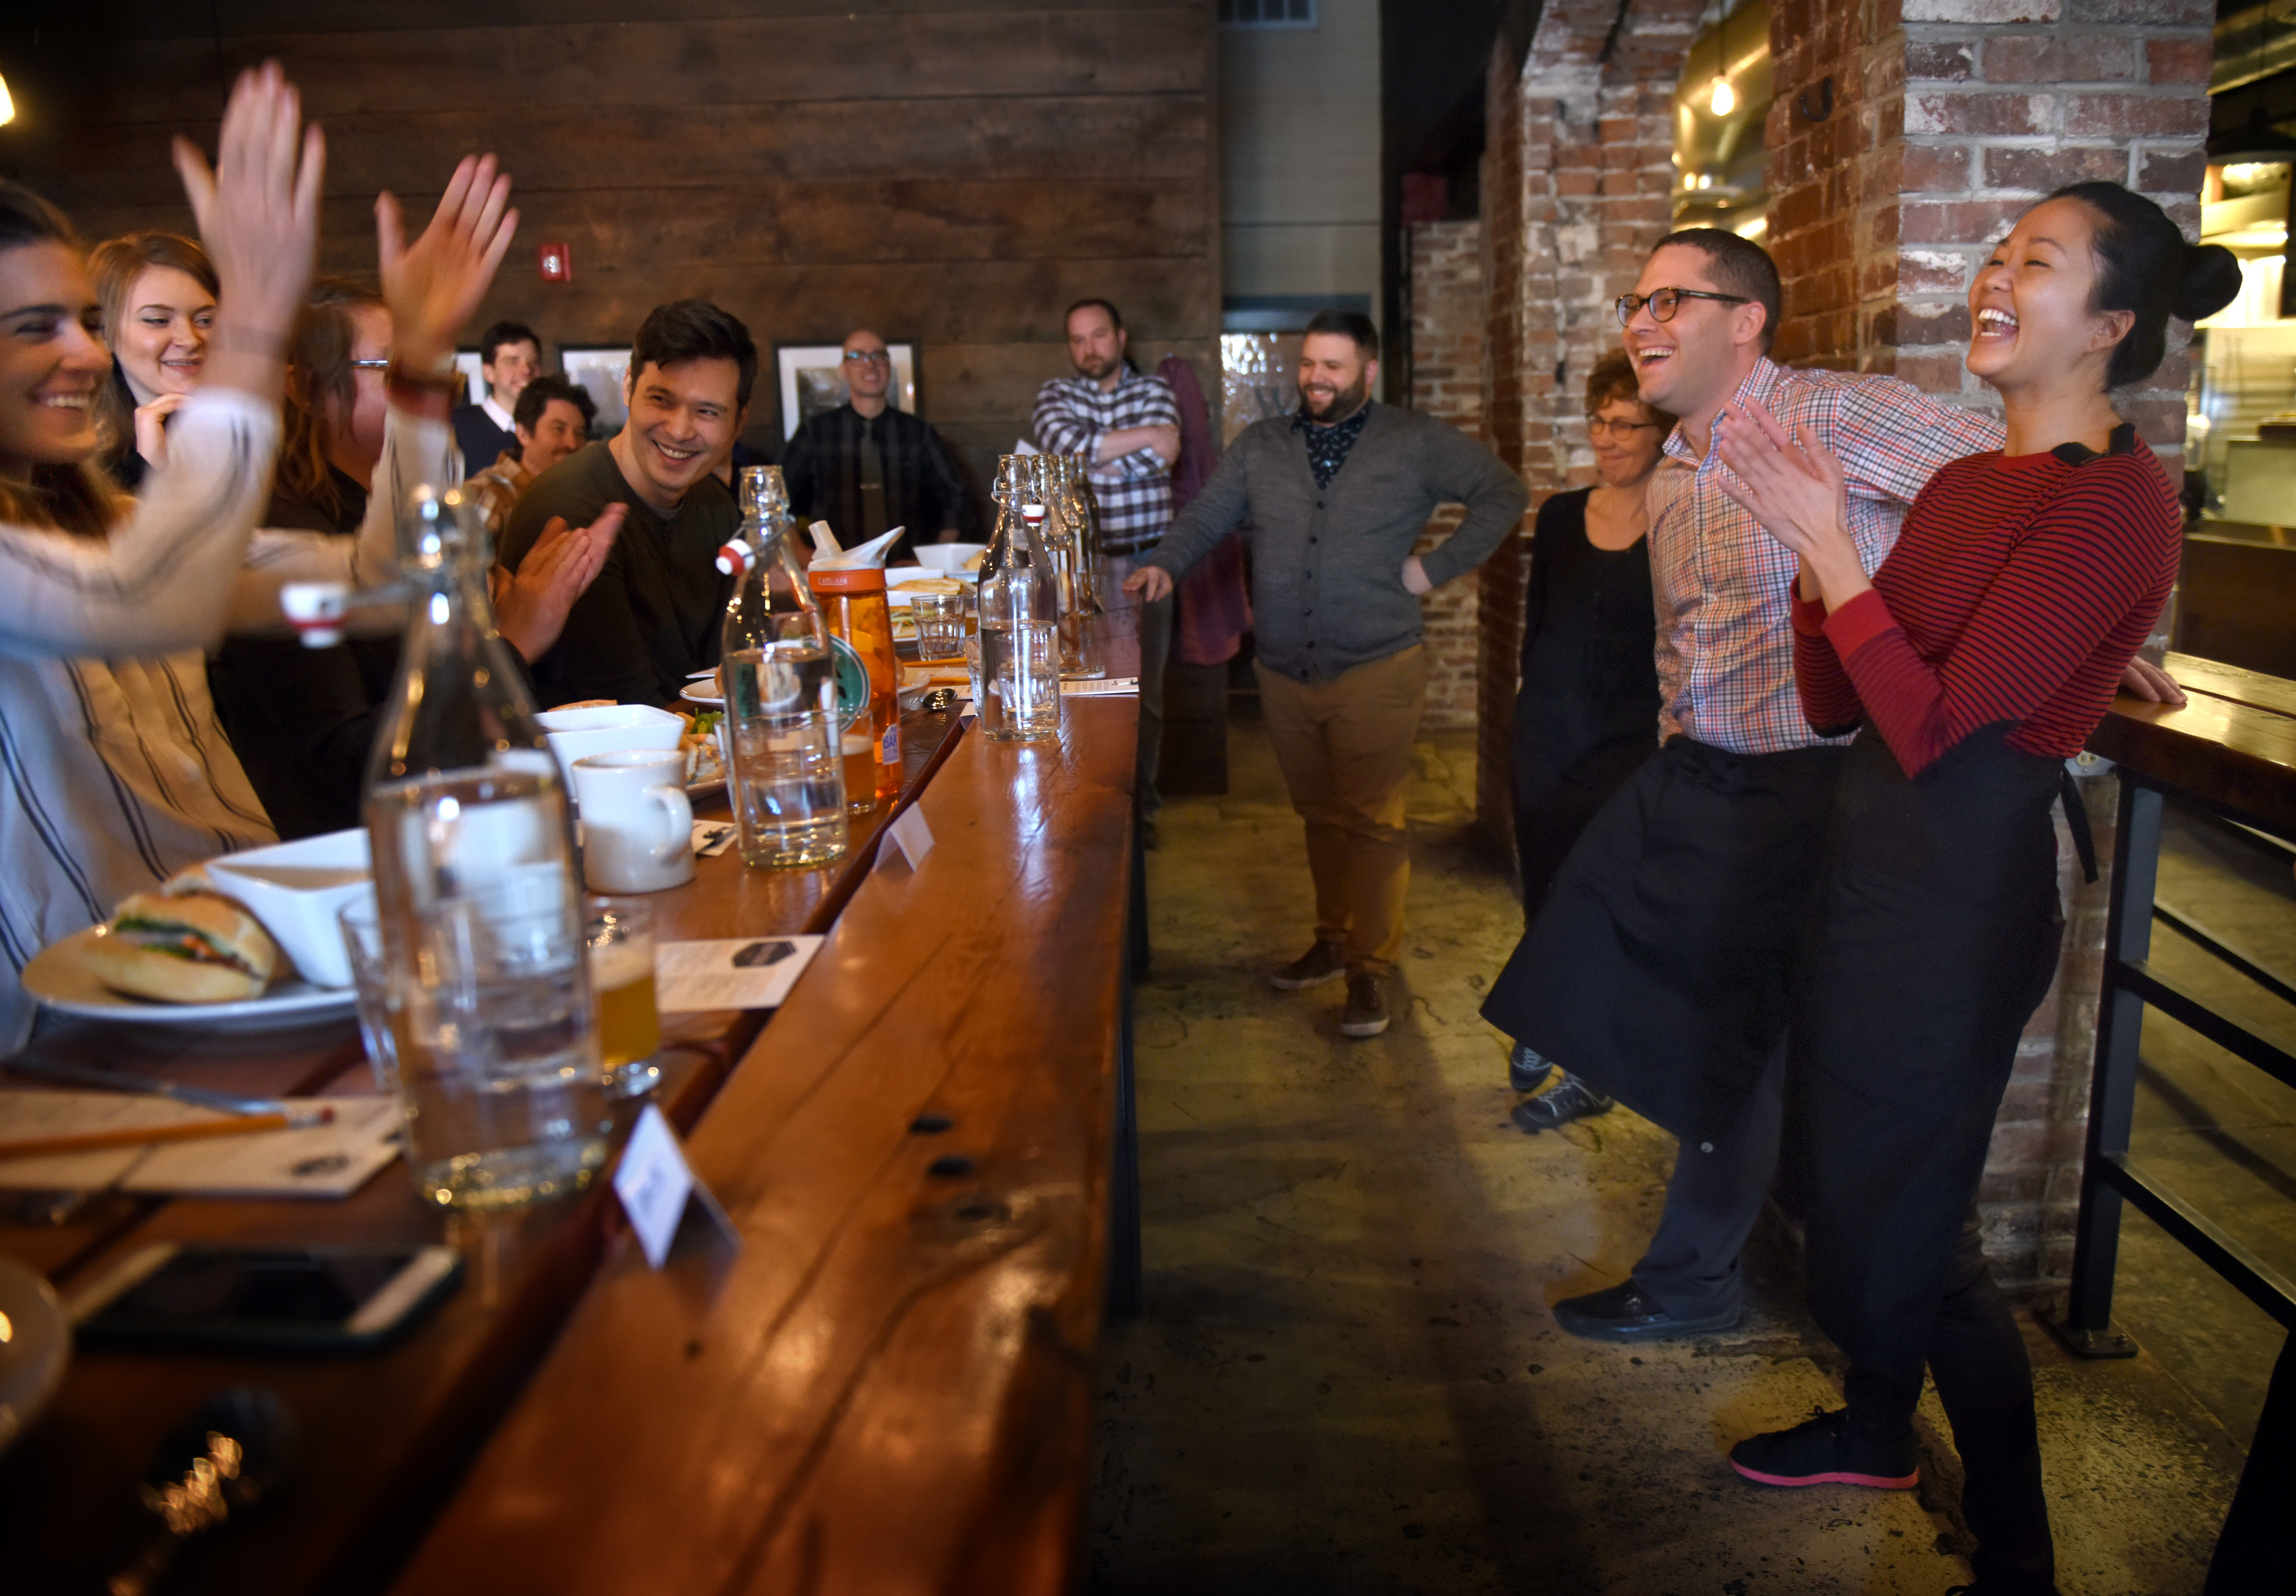 20170213smCookOff001 Executive chef Hoa Le, right, jokes with judges during a cook off at Smallman Galley in the Strip District on Monday.